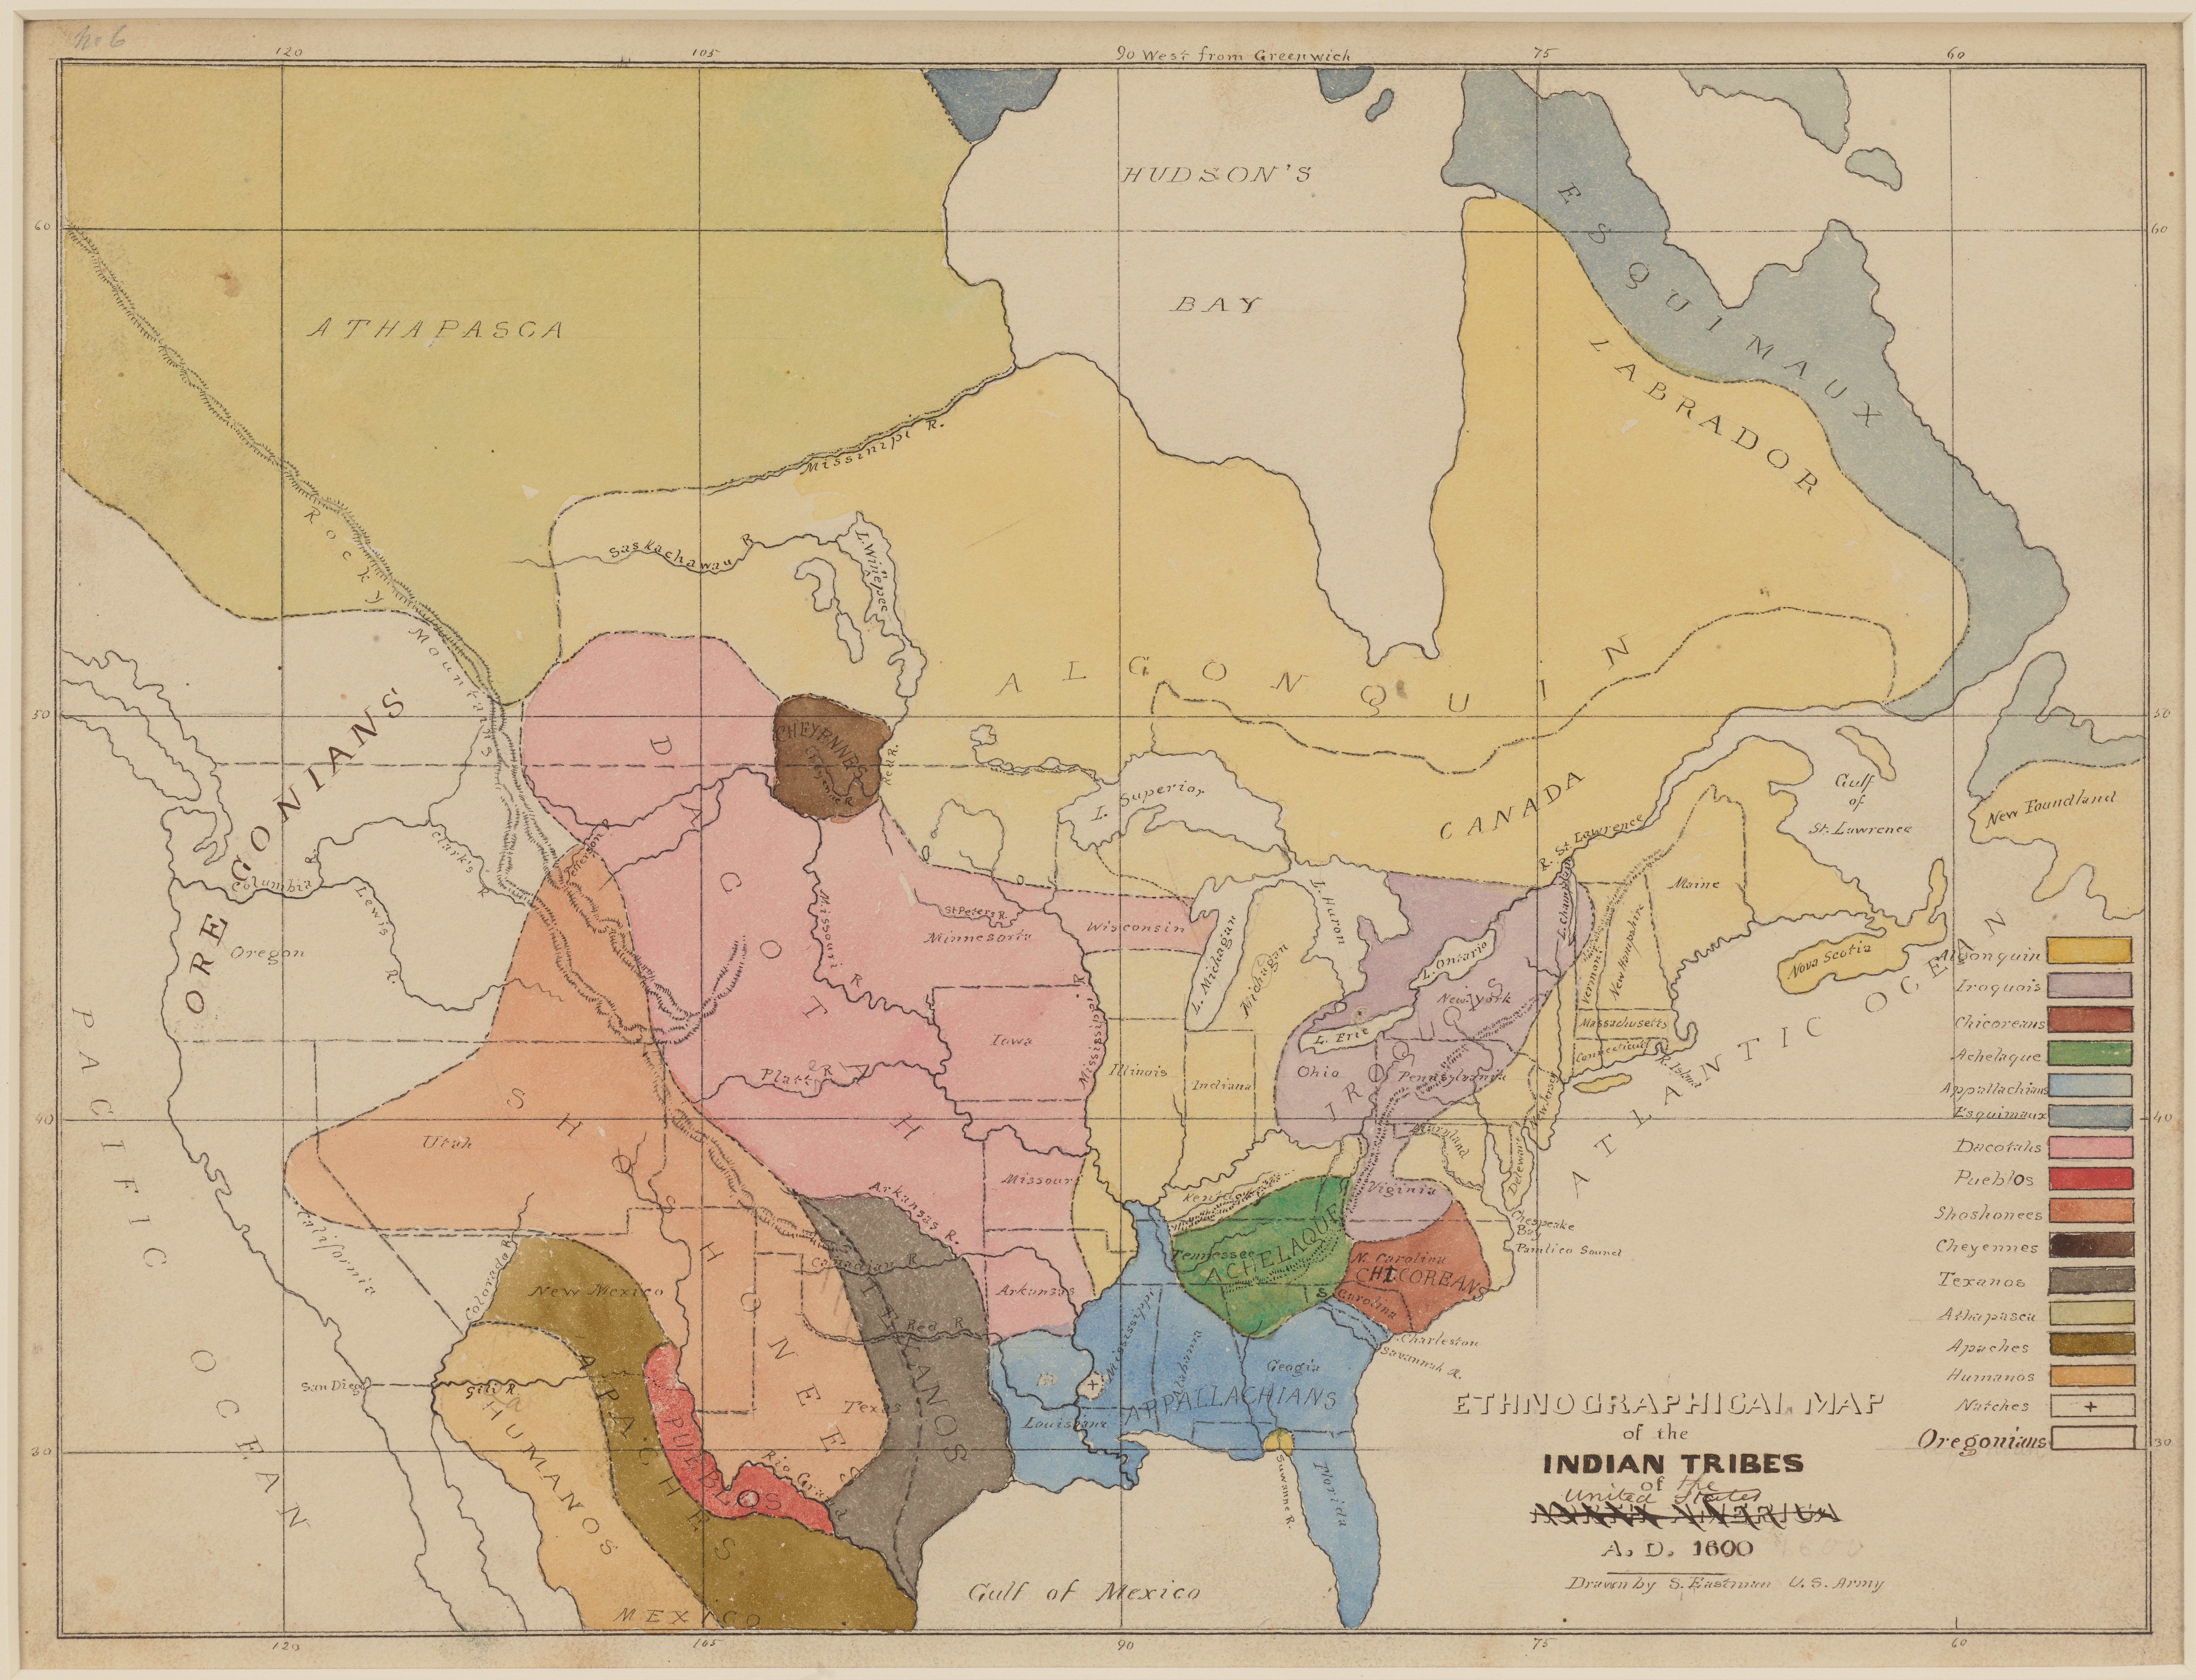 Ethnographic Map Of The Indian Tribes Of The United States Ad - Indian-tribes-of-the-us-map